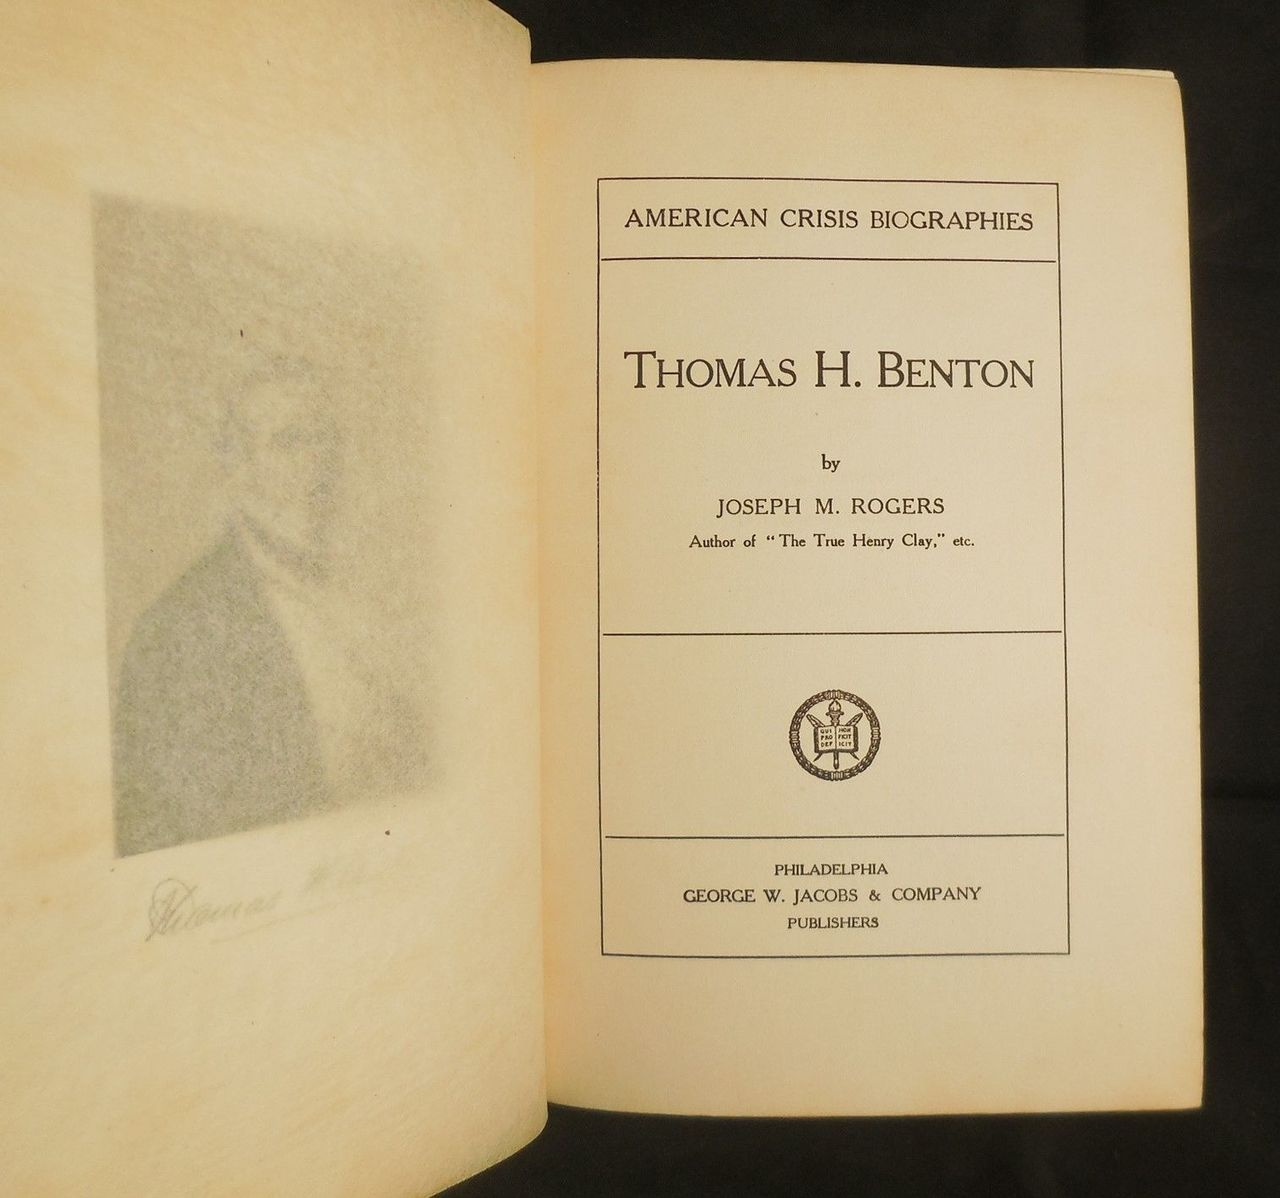 THOMAS H. BENTON, by Joseph M. Rogers - 1905 [The American Biographies Crisis]